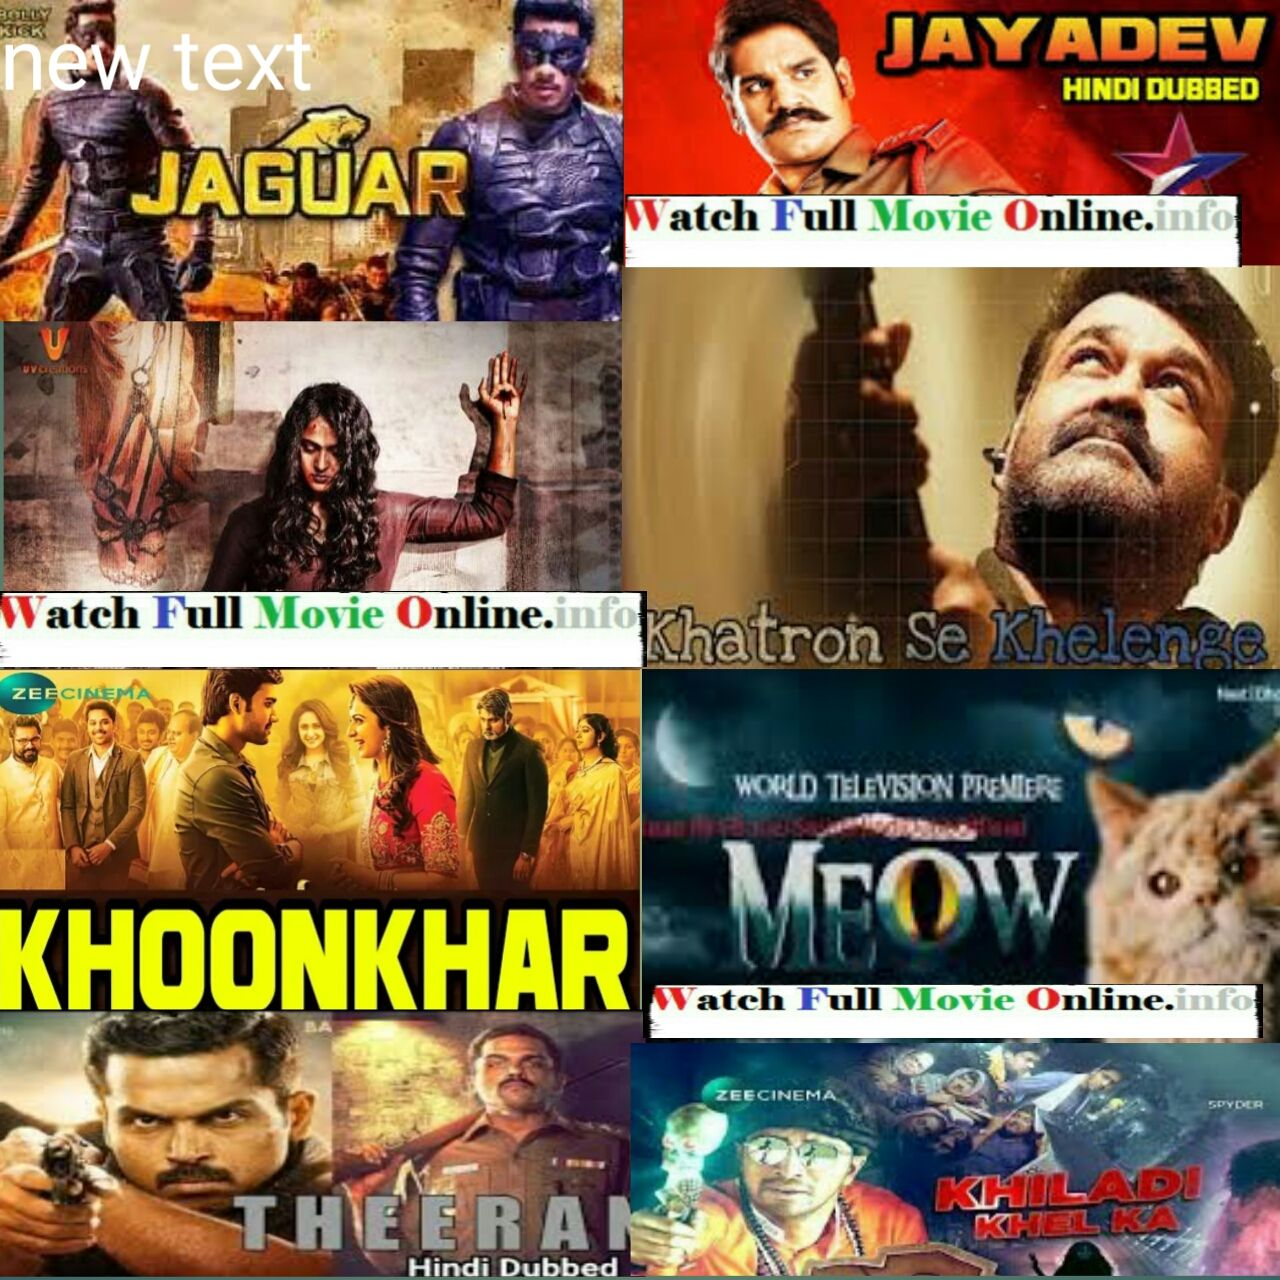 South hindi movies picture download 2019 kick 2